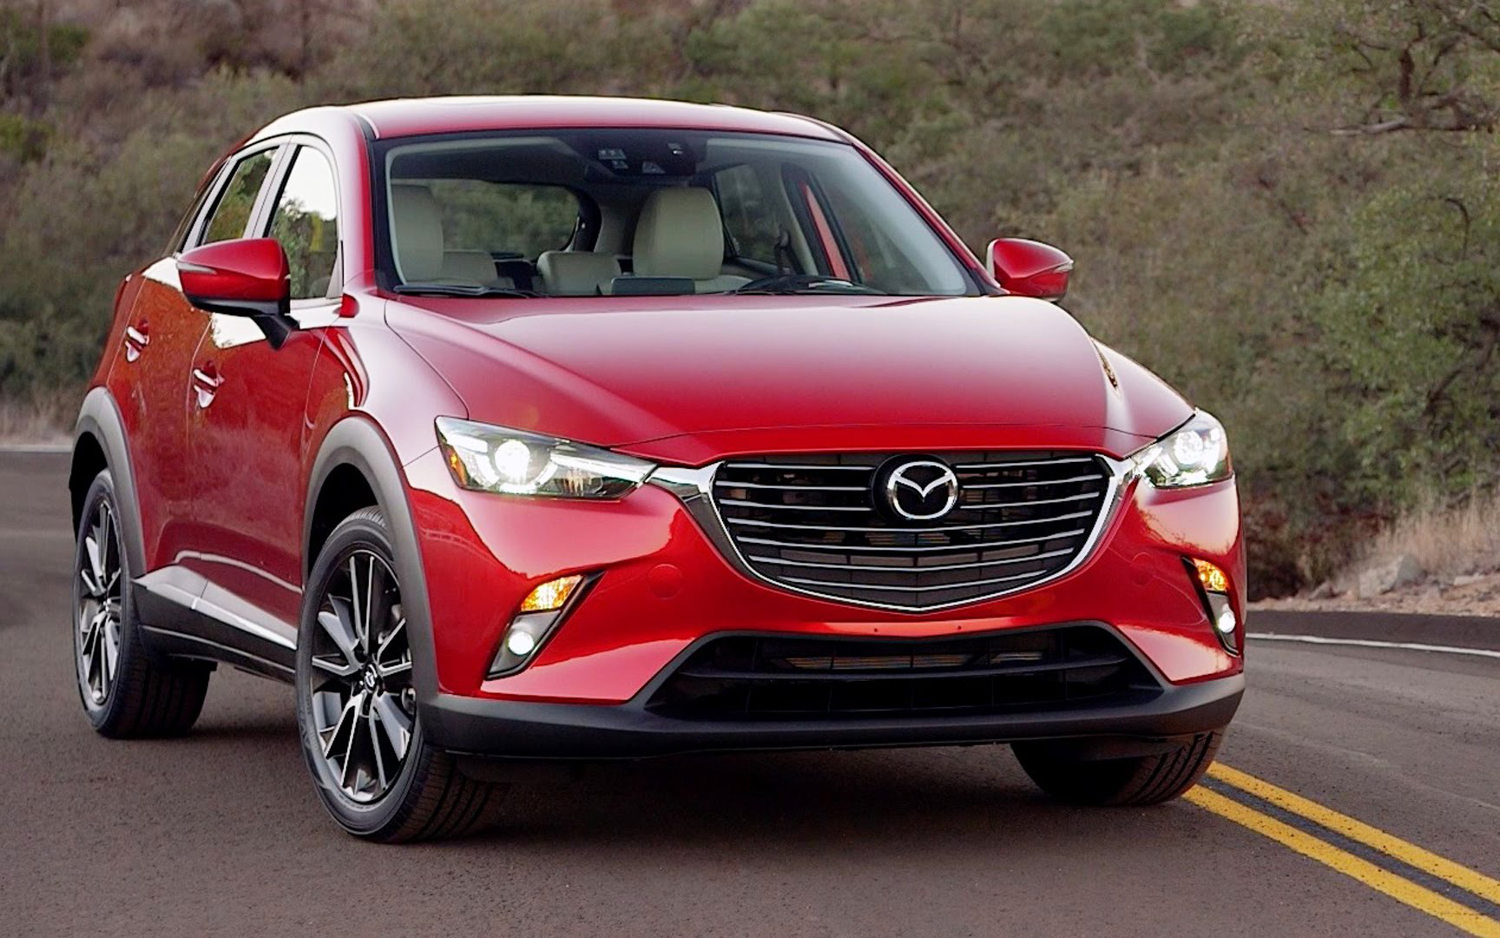 Comparison Mazda Cx 3 2016 Vs Kia Sportage Sx 2017 1